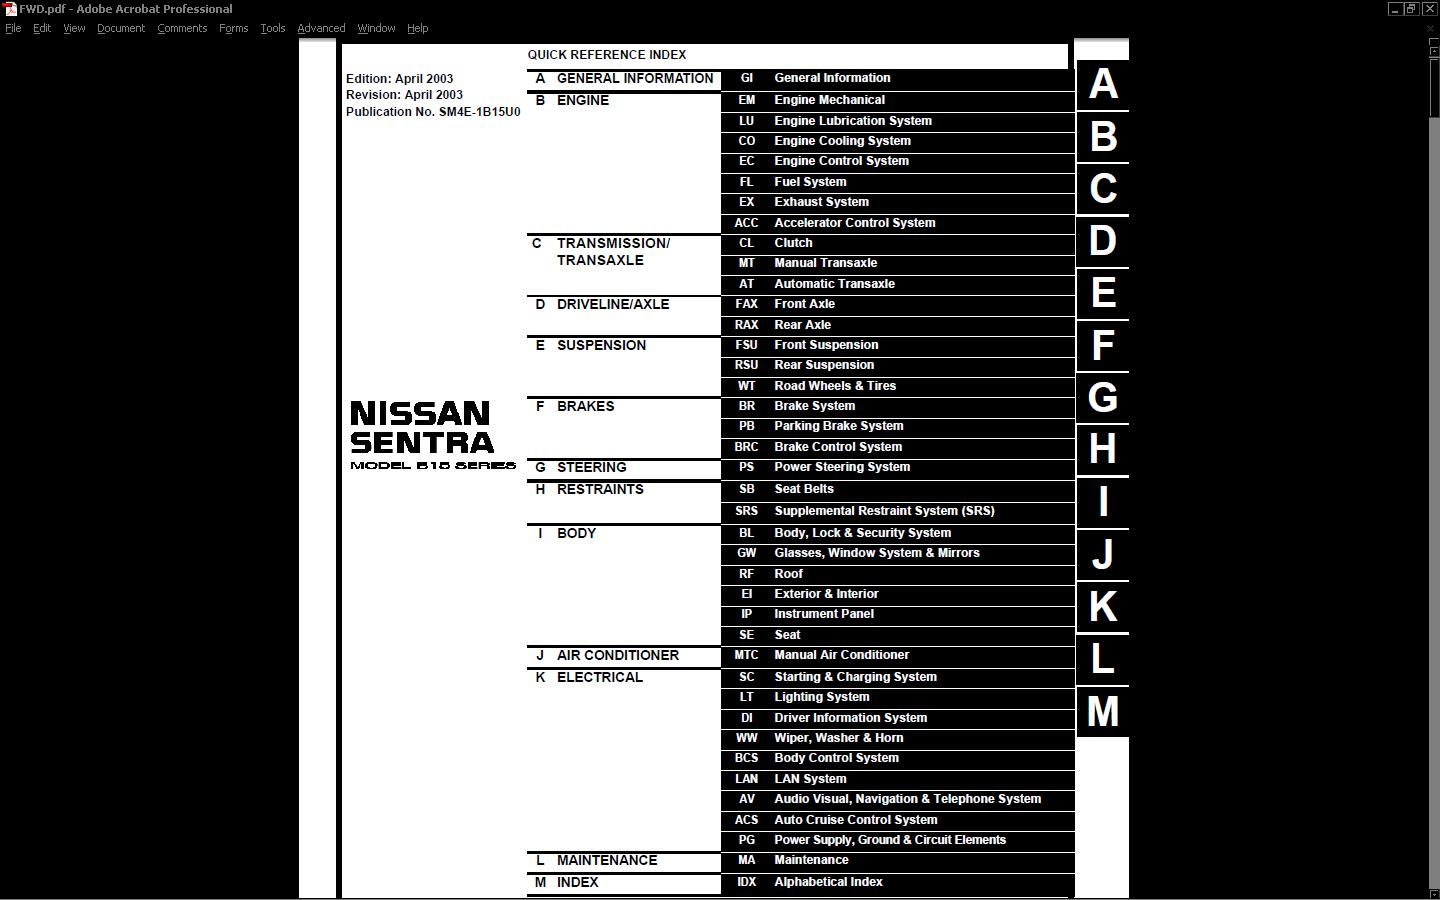 NissanSentra___Shop_Service_manual__orig__210__frontpage_953f8?resize=665%2C416 2003 nissan sentra se r wiring diagram wiring diagram  at bayanpartner.co